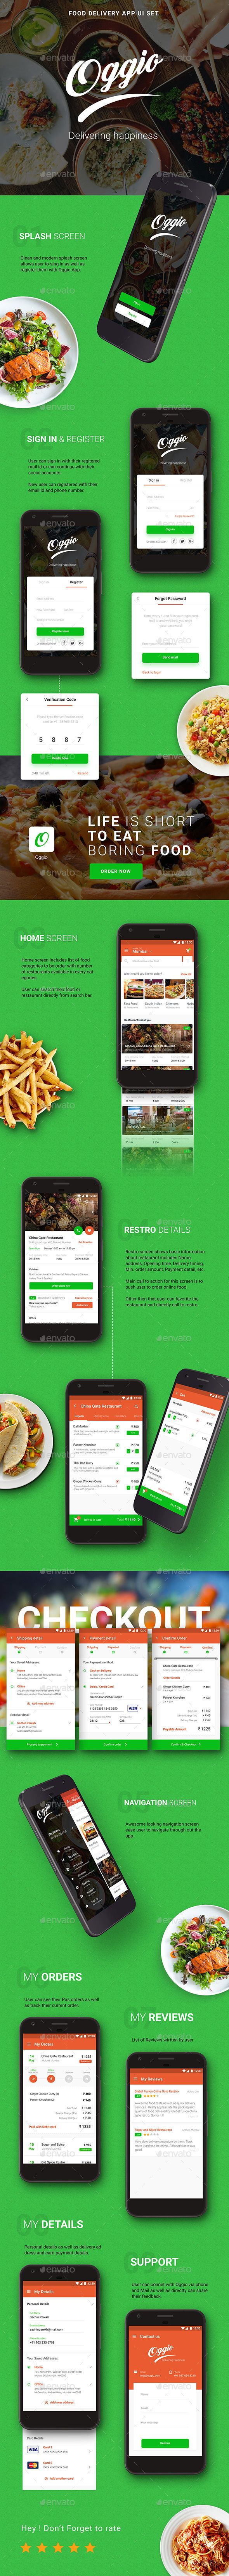 Food Delivery App | Oggio | App UI Set — Photoshop PSD #ecommerce #ui mobile • Download ➝ https://graphicriver.net/item/food-delivery-app-oggio-app-ui-set/20026004?ref=pxcr